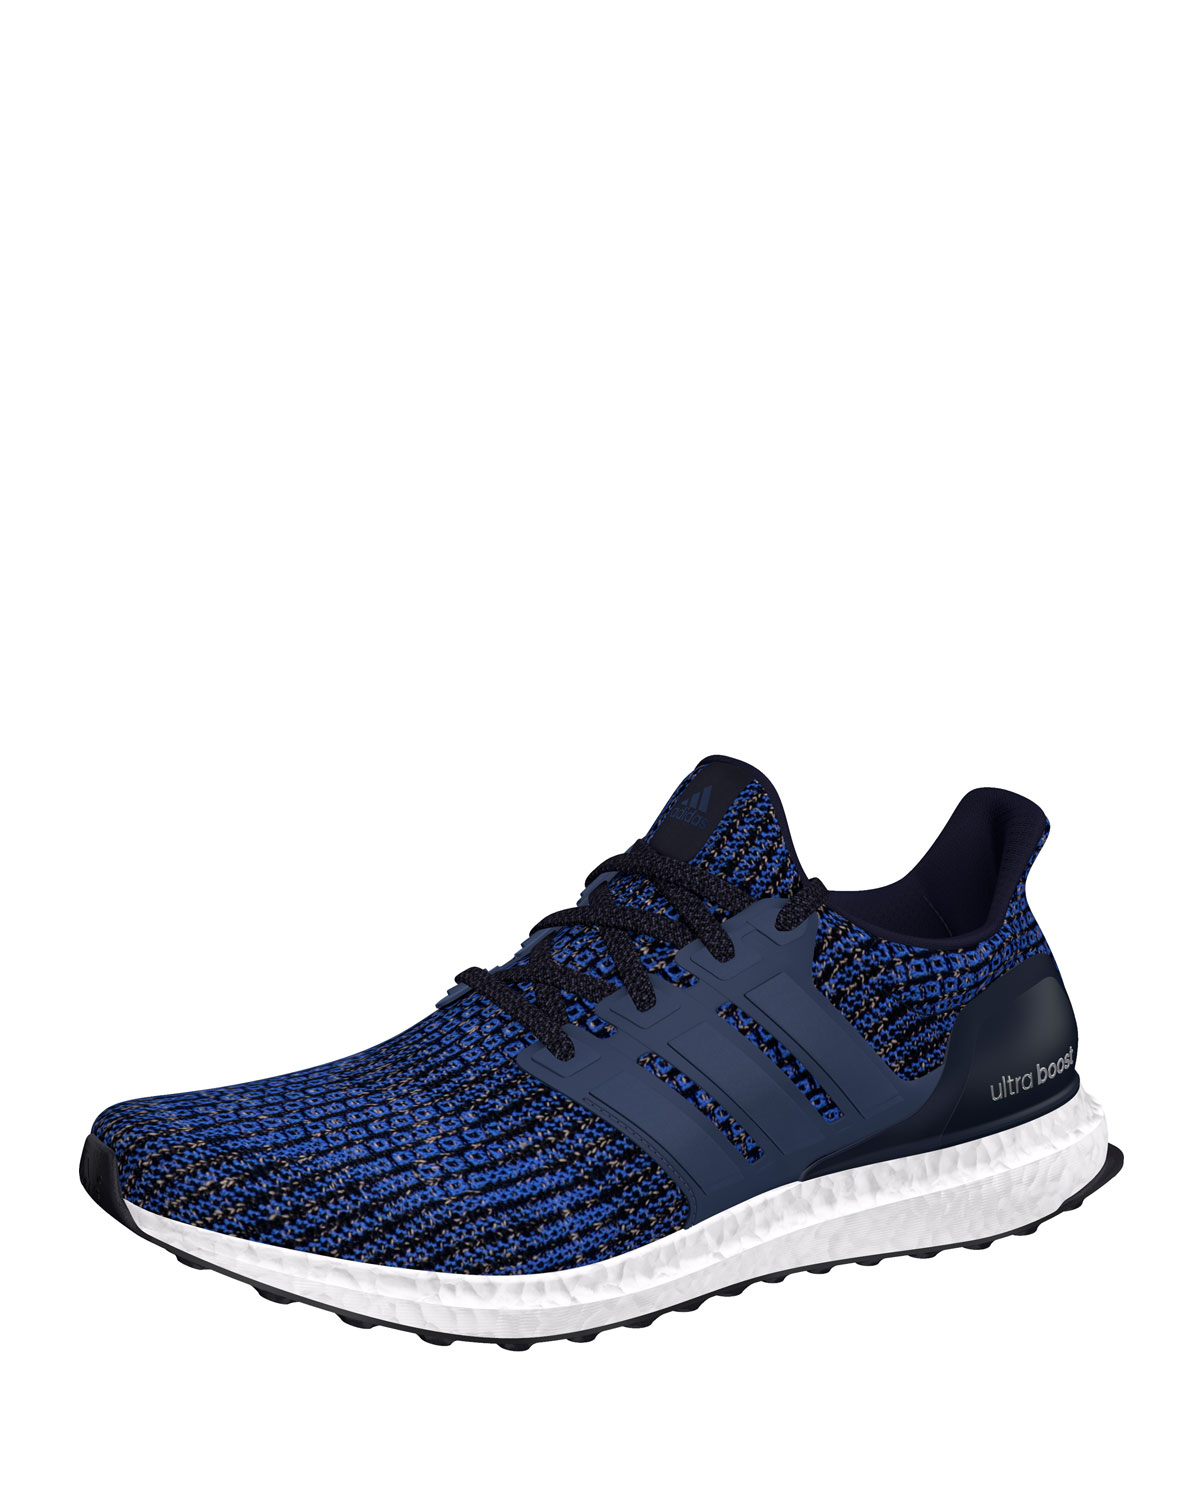 af975c981 Adidas Men's Ultraboost Running Sneakers, Blue | Neiman Marcus